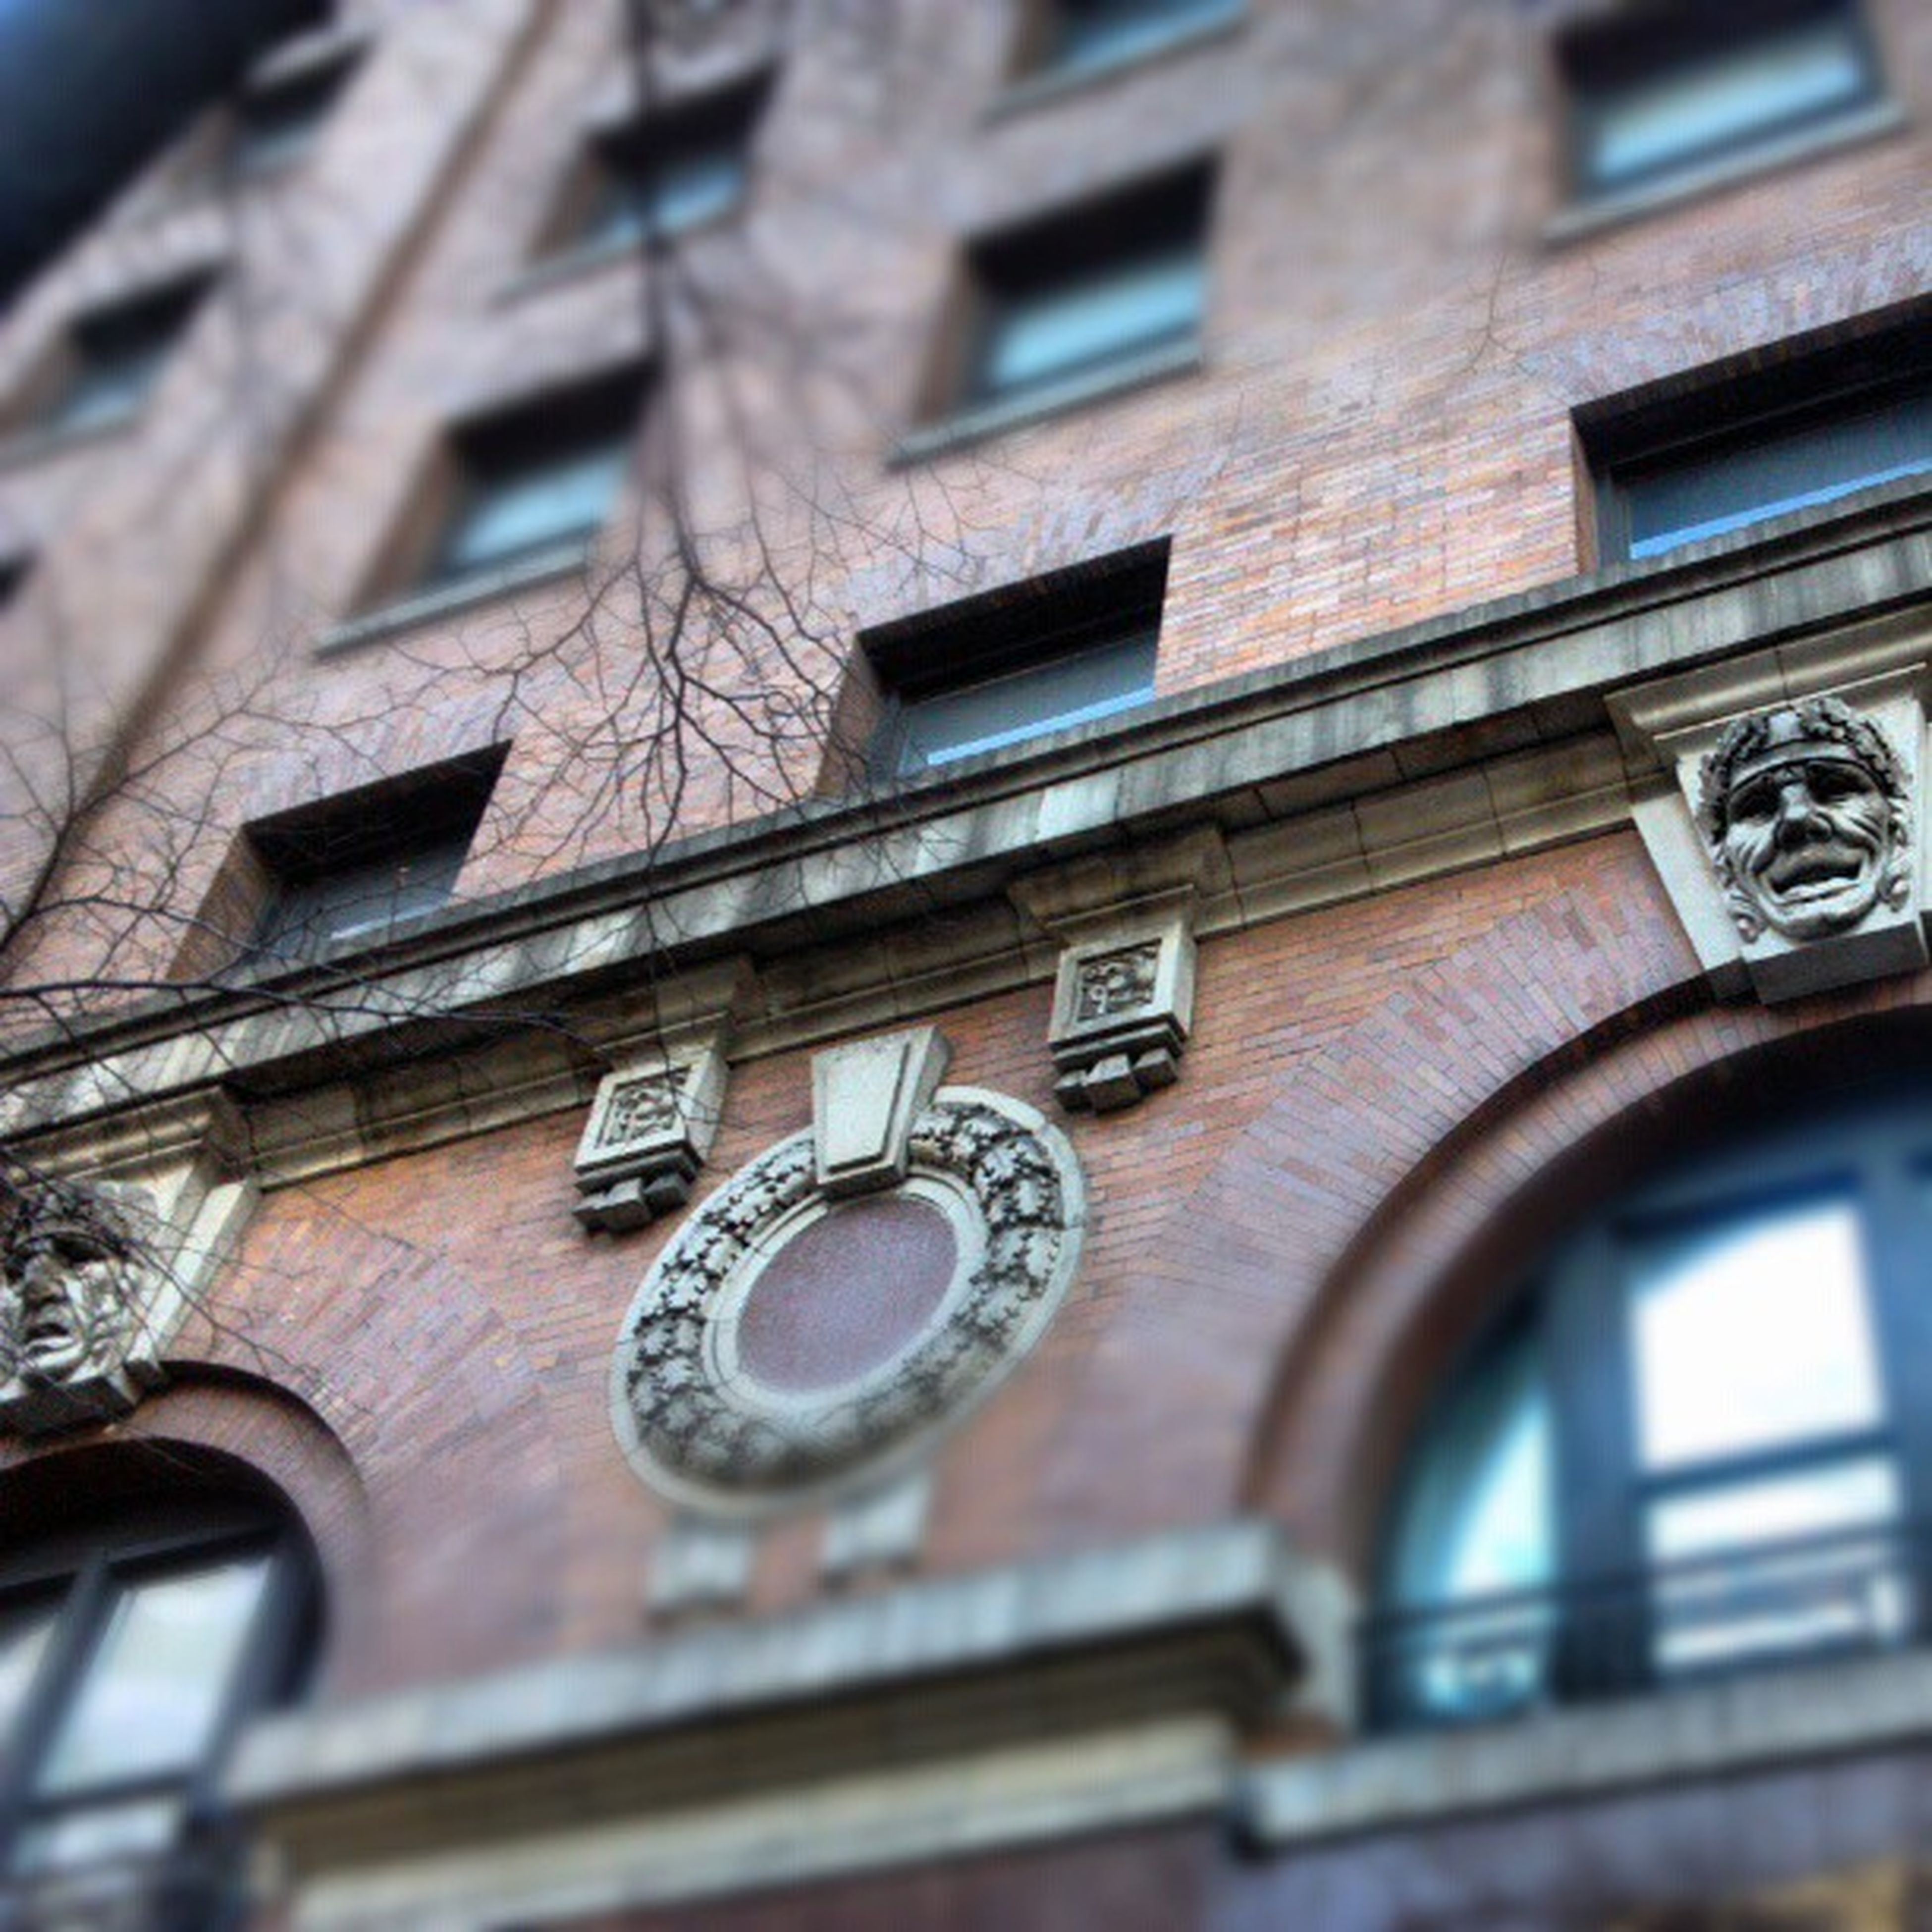 architecture, building exterior, built structure, low angle view, window, building, day, city, outdoors, residential building, close-up, no people, arch, residential structure, brick wall, focus on foreground, facade, time, part of, clock